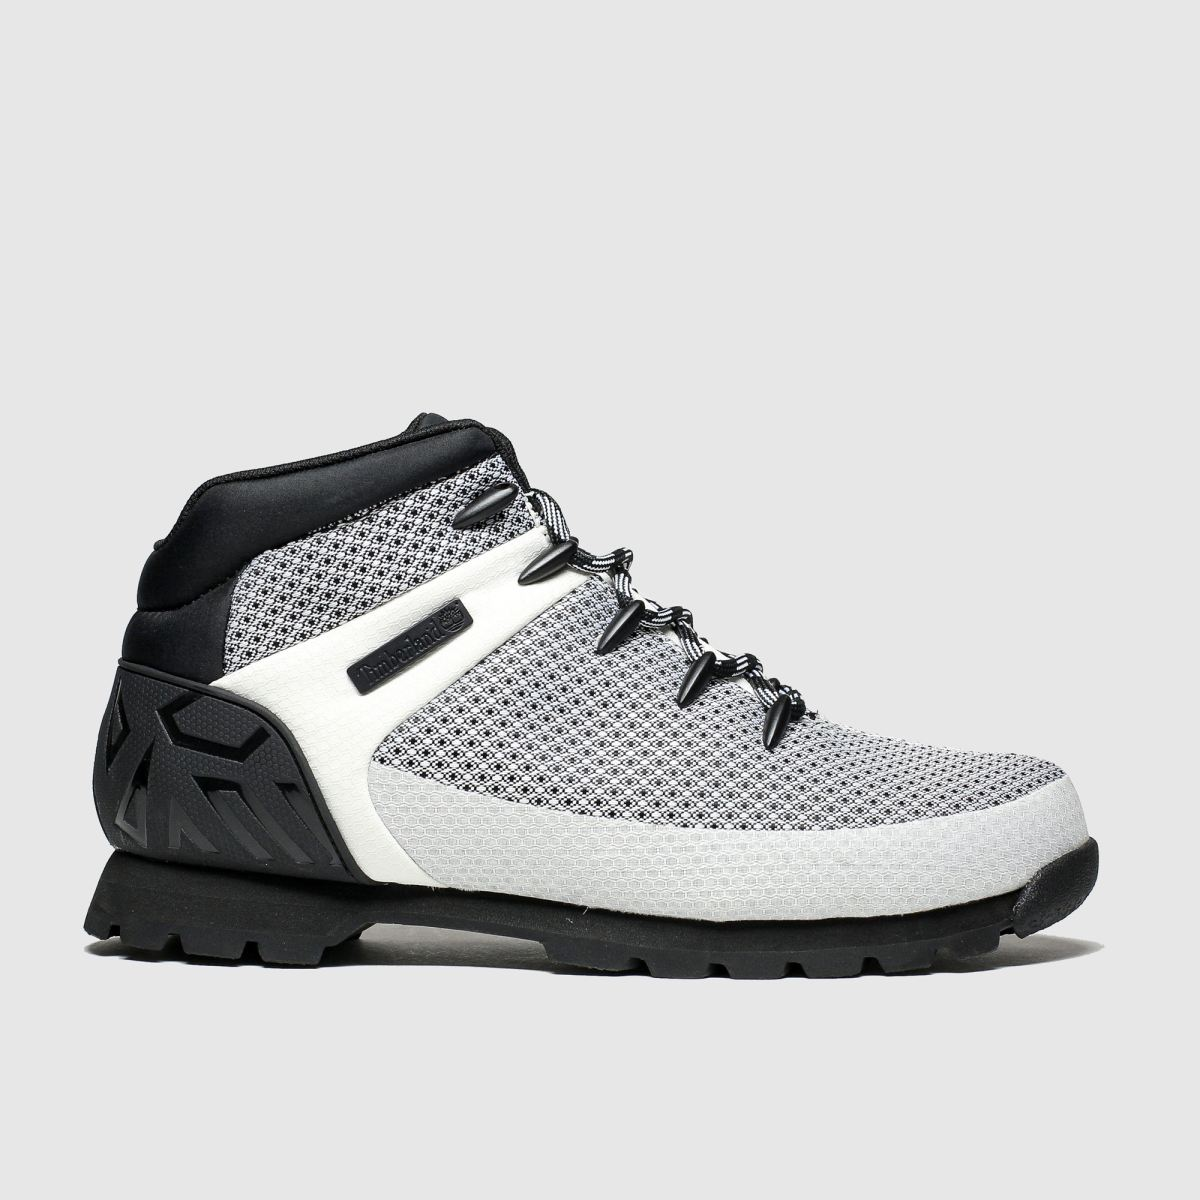 Timberland White & Black Euro Sprint Boots